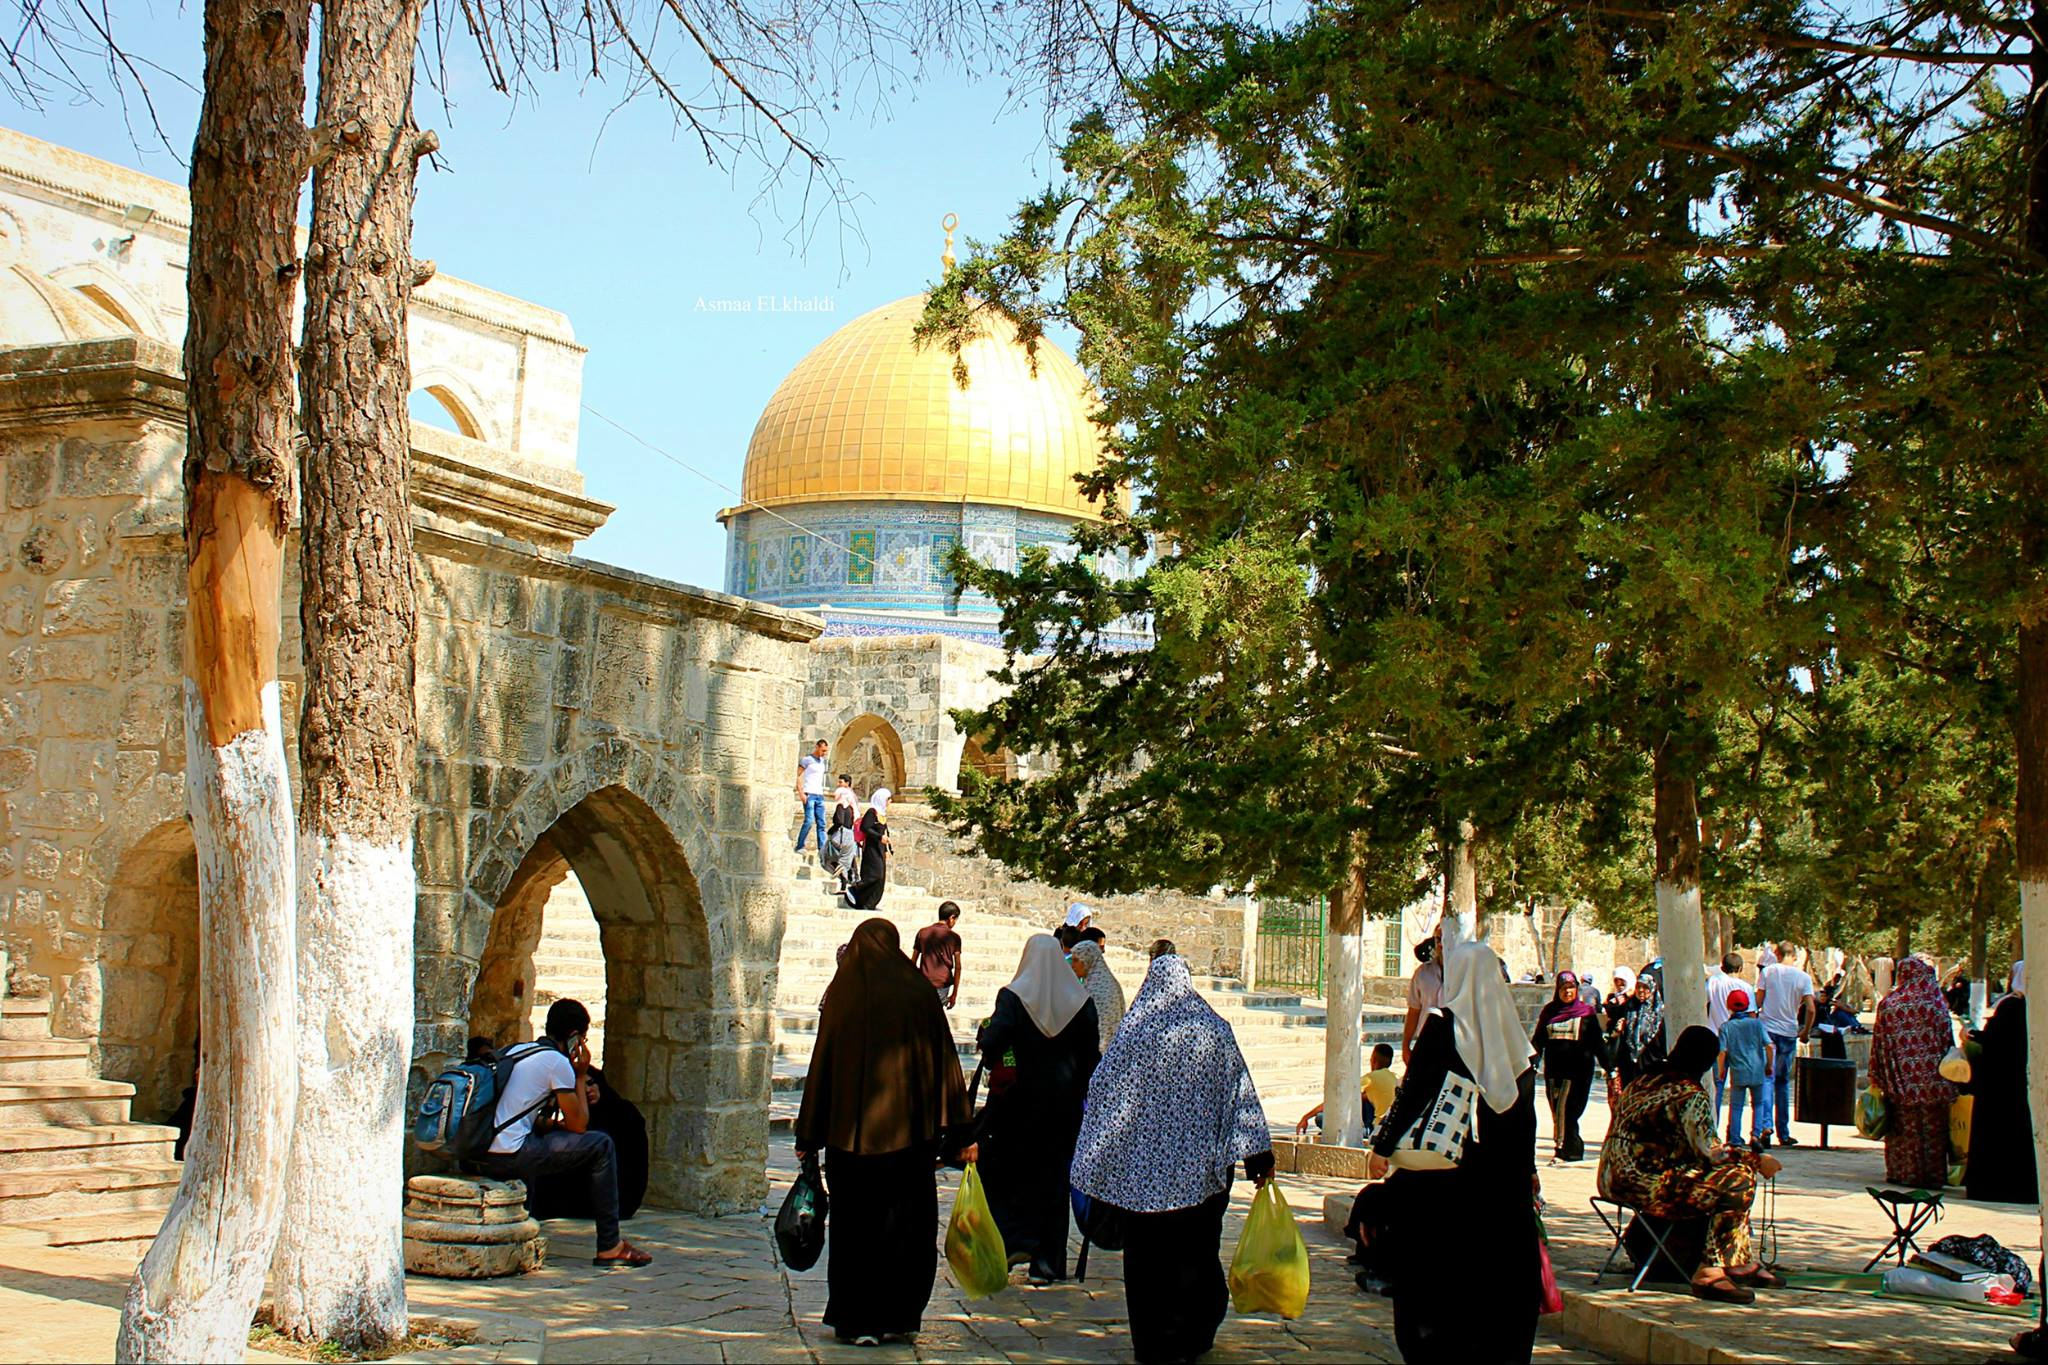 Leading up to Al-Aqsa Mosque